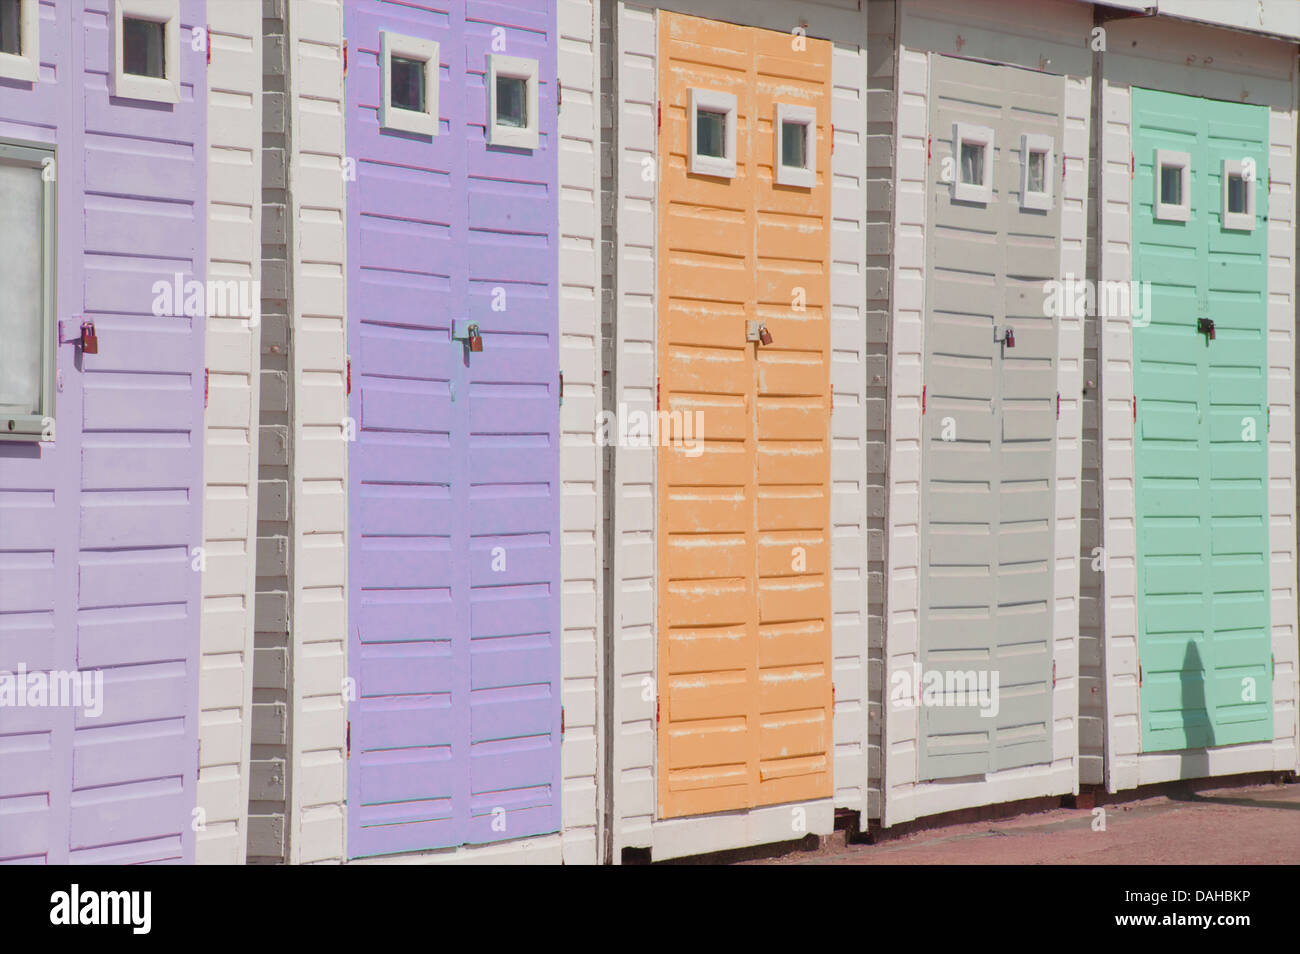 Beach huts on the promenade at Lyme Regis, Dorset, England - Stock Image